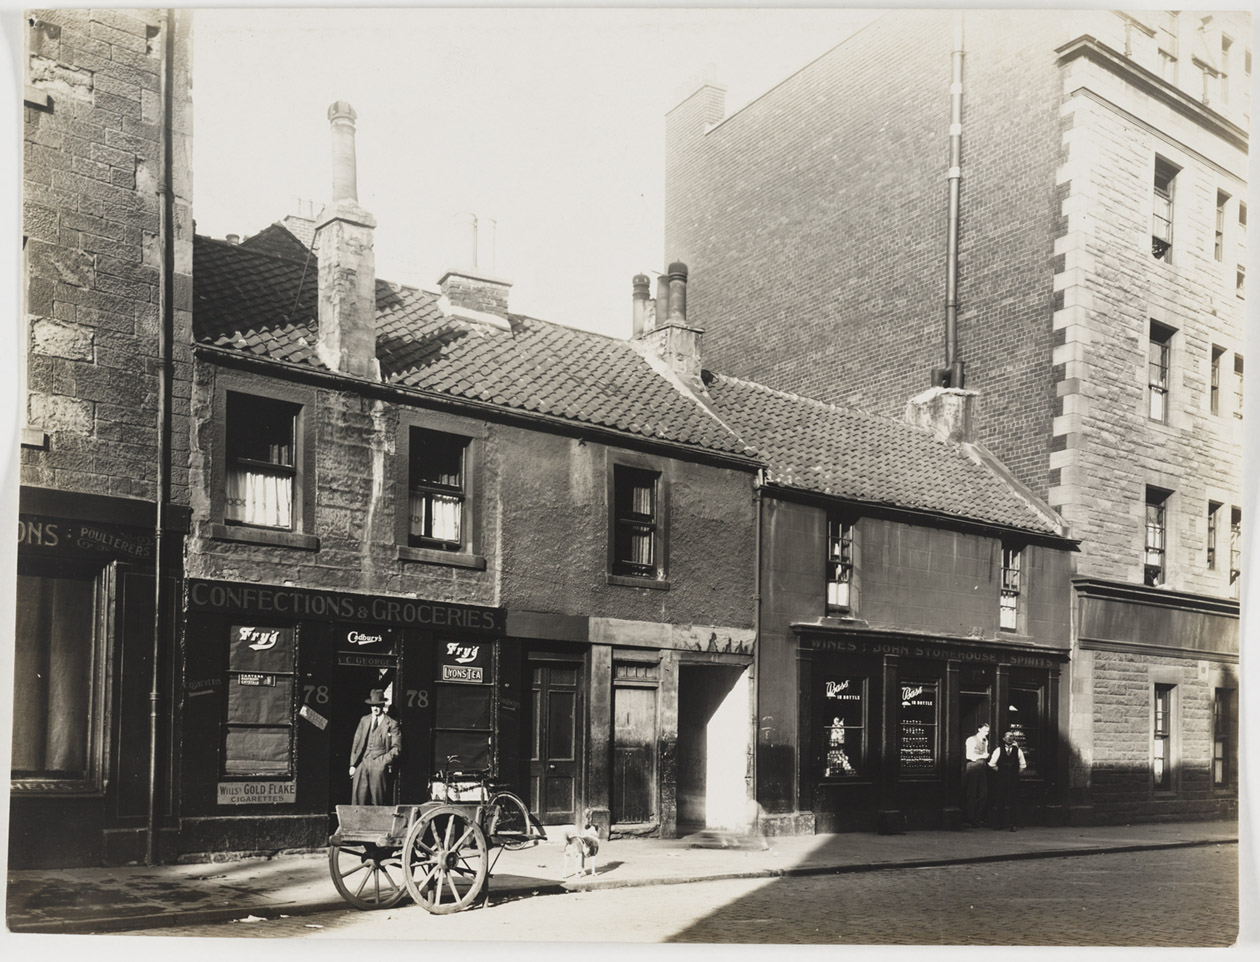 Exterior image of 72-78 Causewayside (image courtesy of the National Library of Scotland)